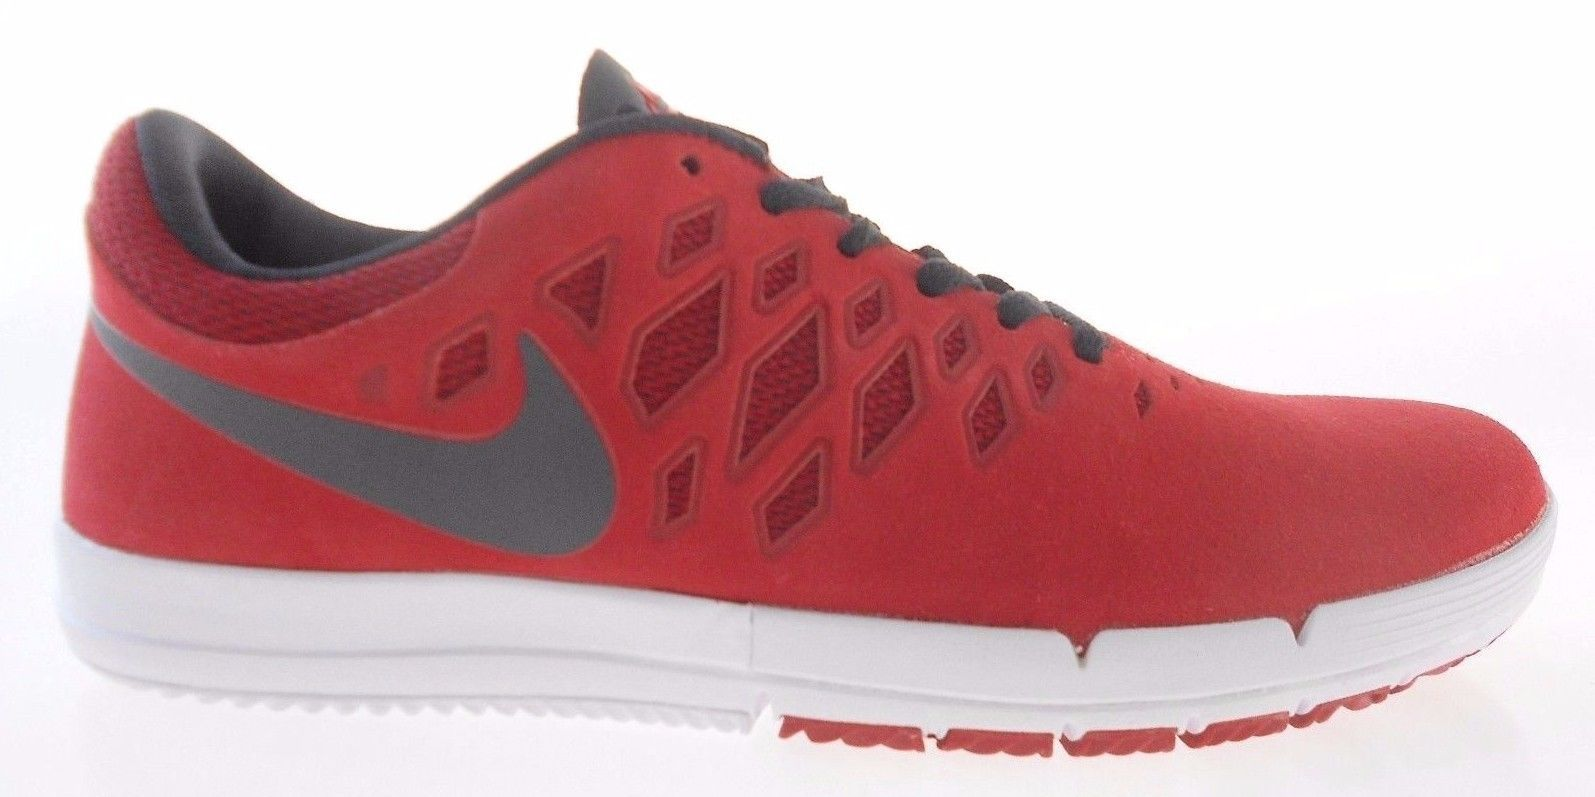 Primary image for NIKE FREE SB MEN'S GYM RED/BLACK SHOES MULTIPLE SIZES, #704936-606 $120.00